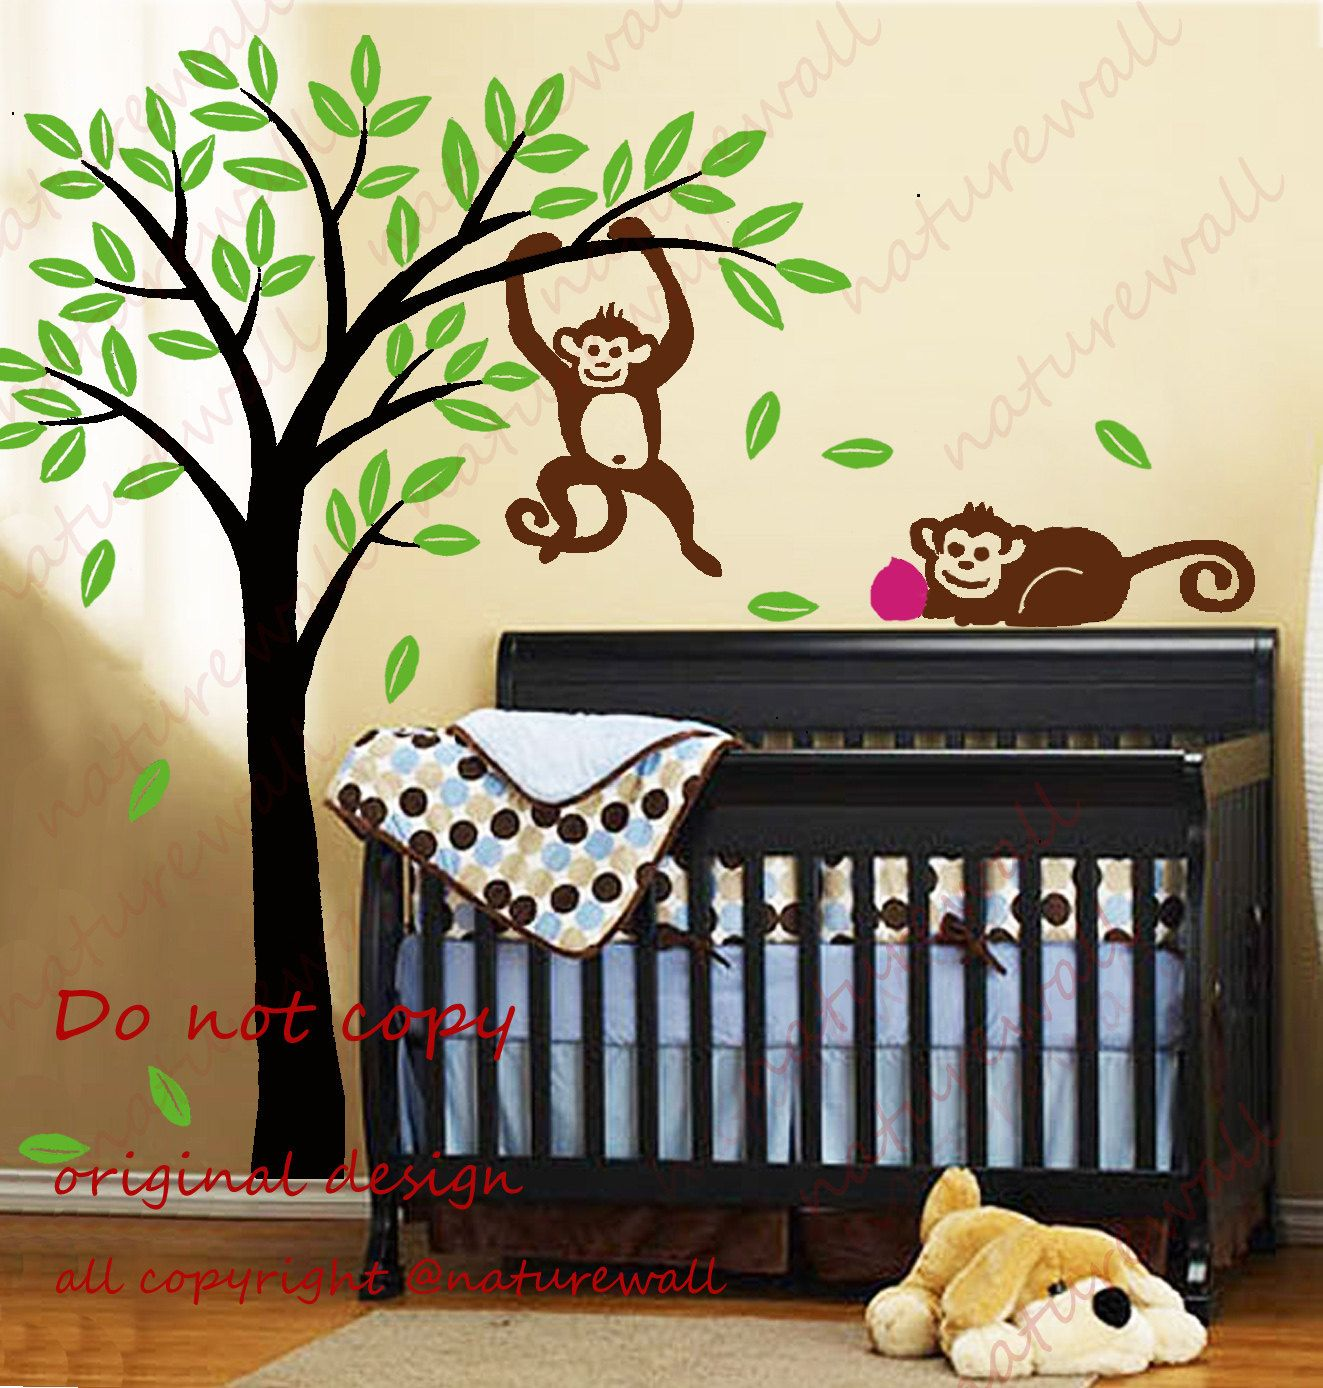 Kids wall decals tree decal baby decal nursery decal by naturewall